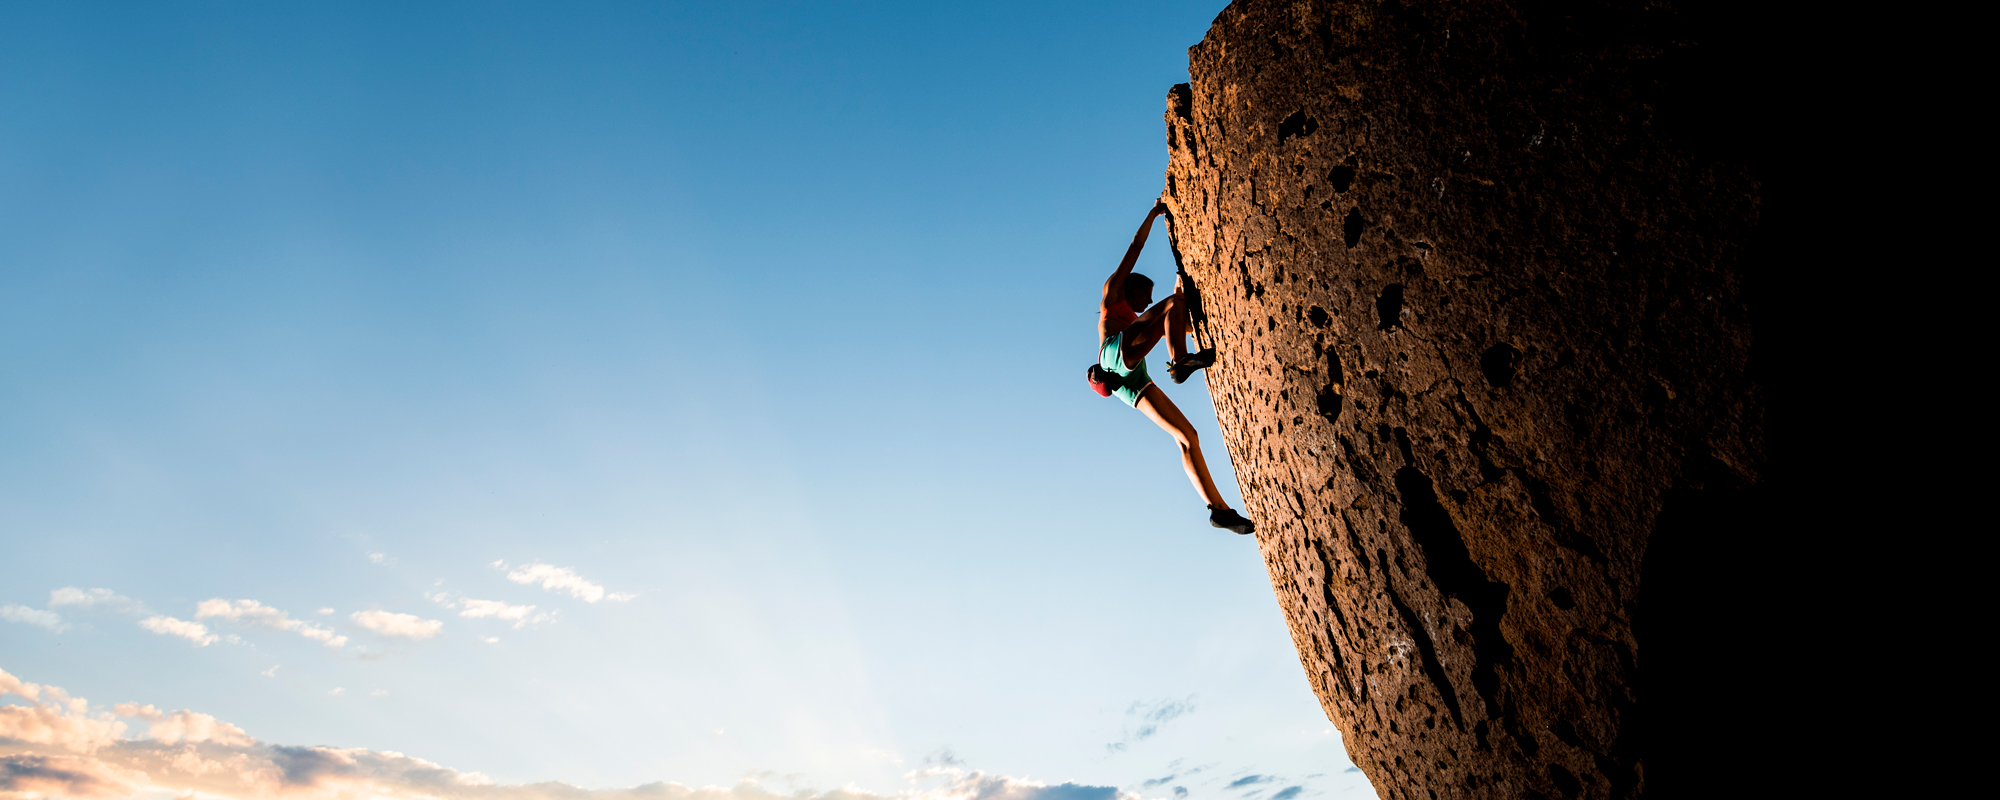 A person climbs the face of a large rock while the sun beams behind clouds in a blue sky behind them